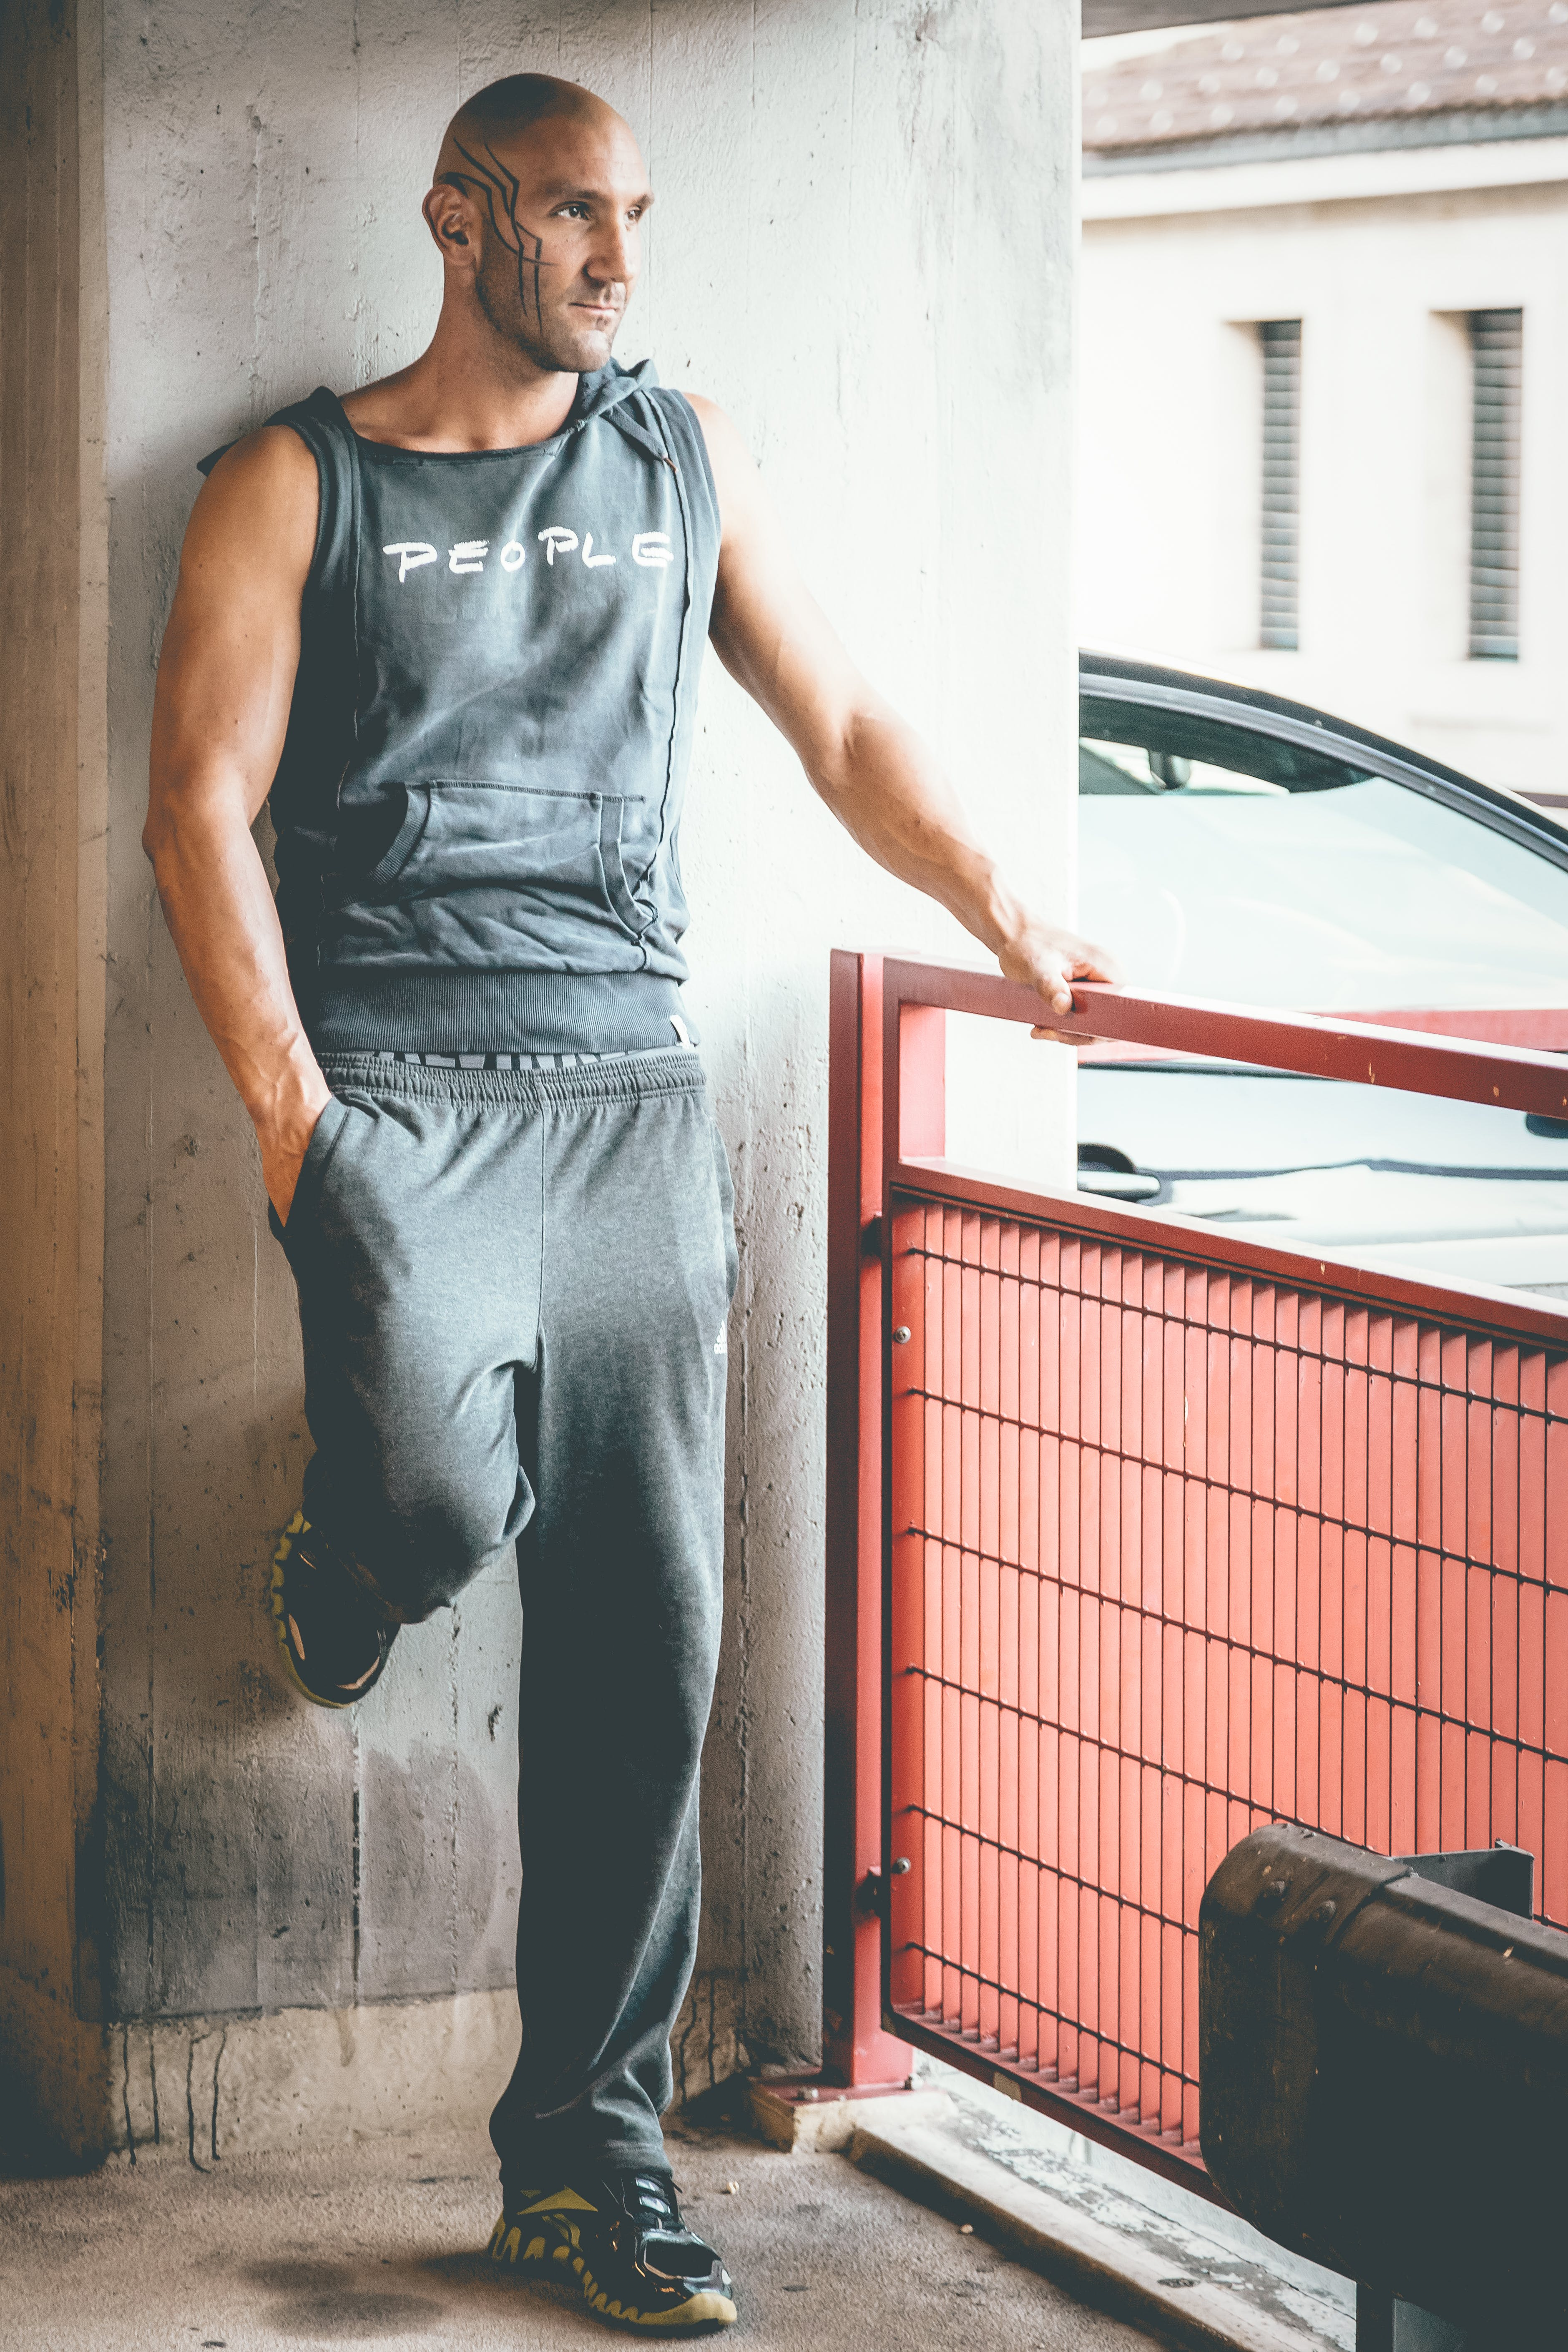 Man Wearing Gray Tank Top and Track Pants Leaning on Wall